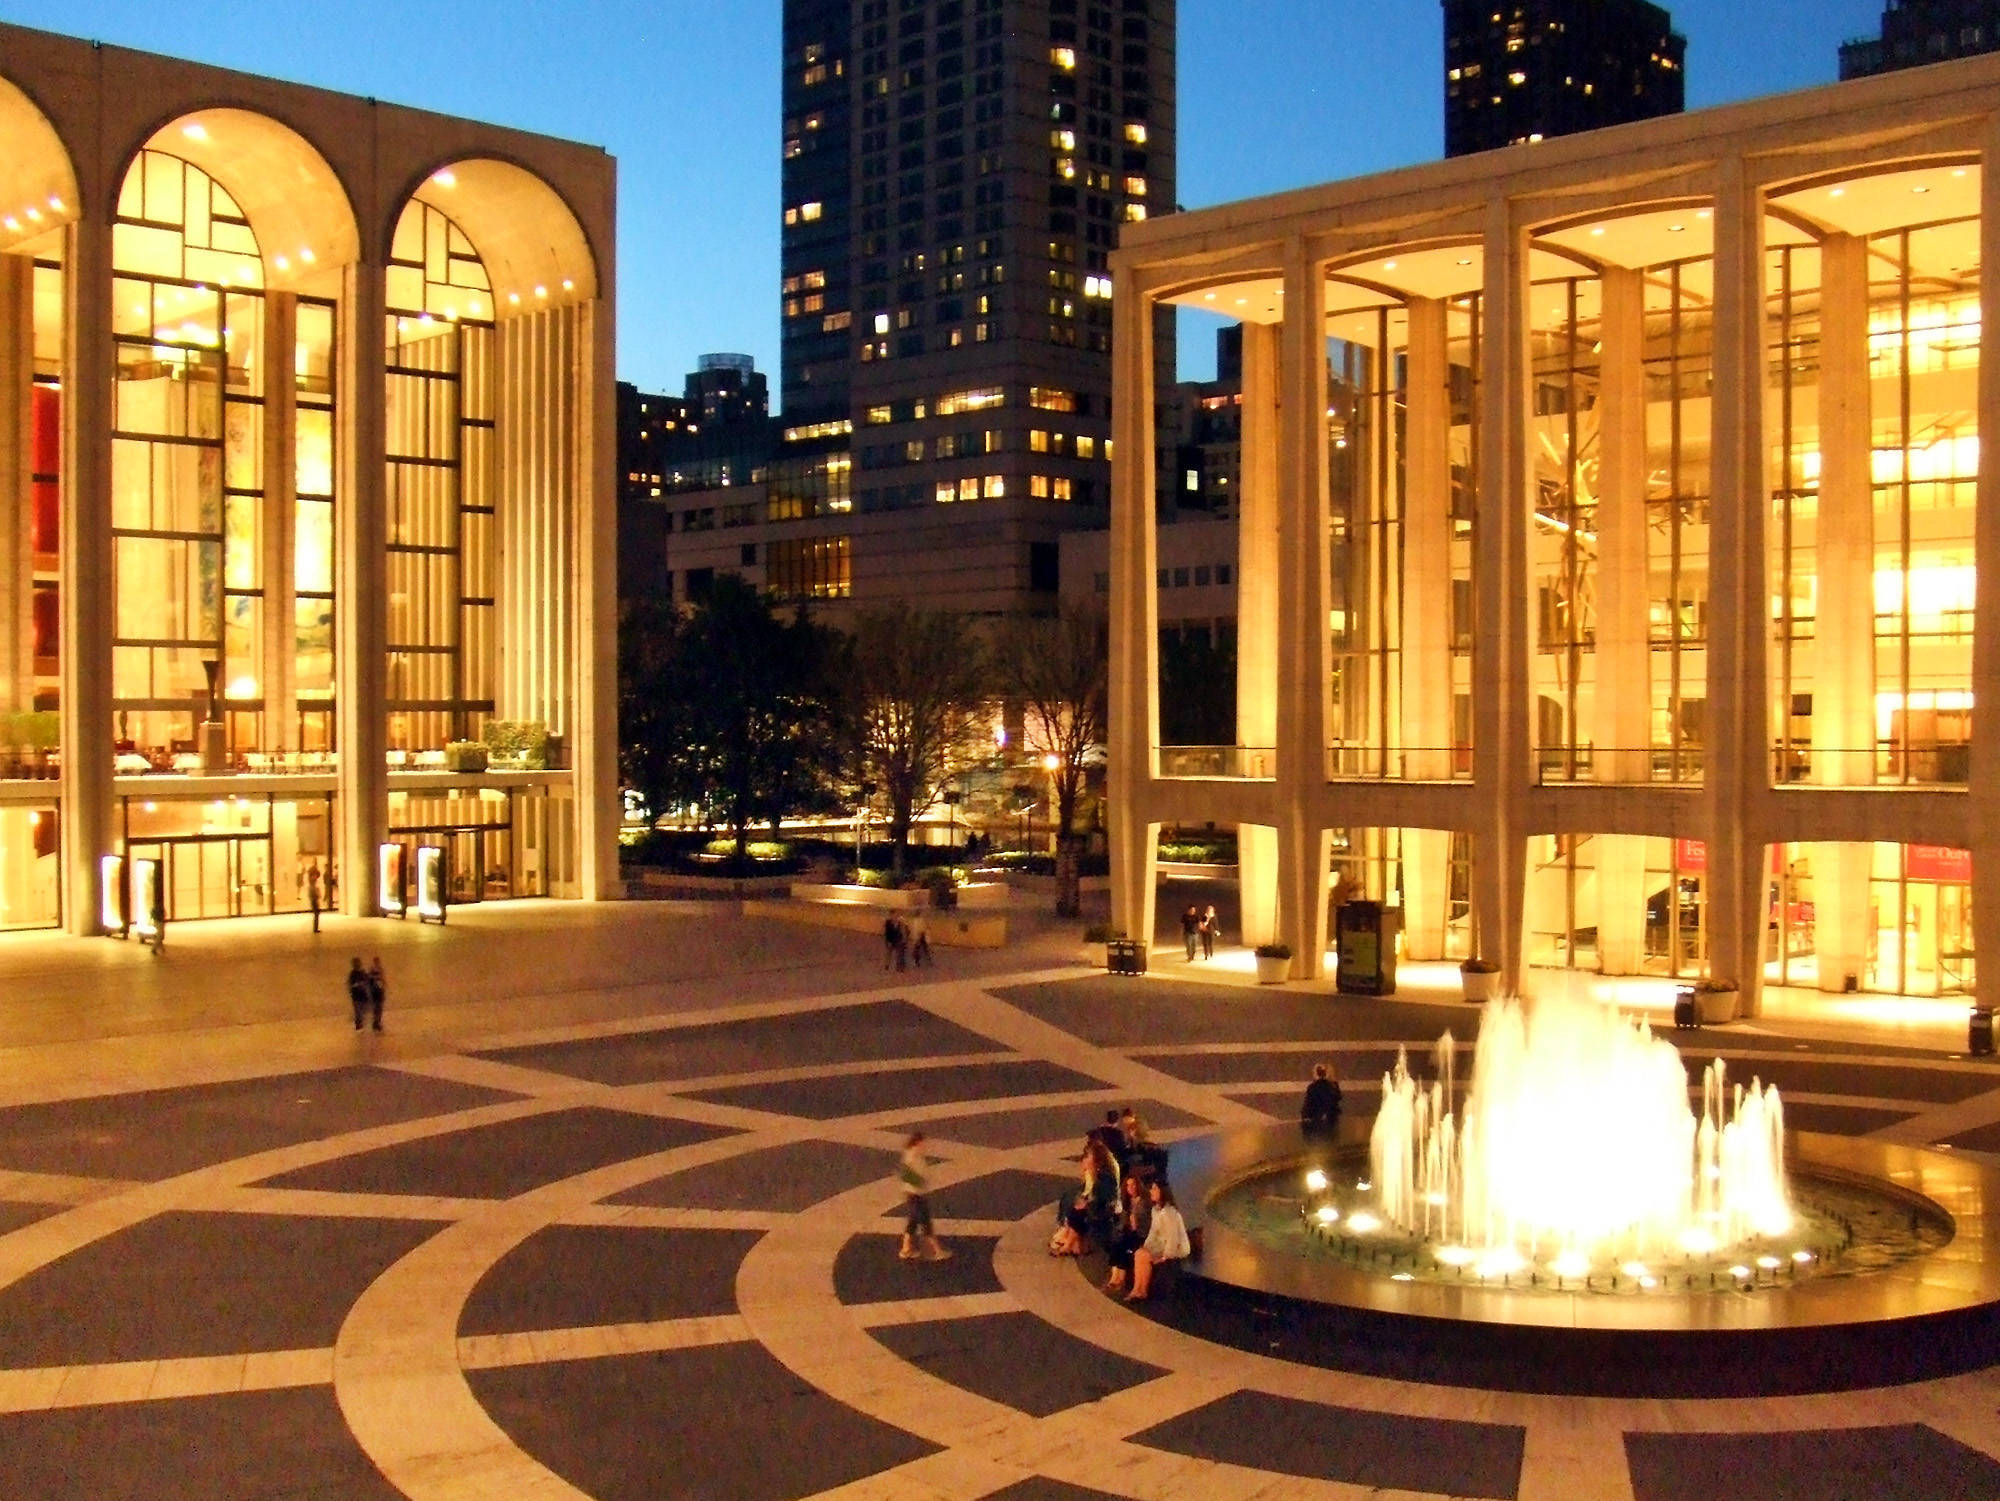 3db00e6983a5f6cccb3a_Lincoln_Center_Twilight.jpg